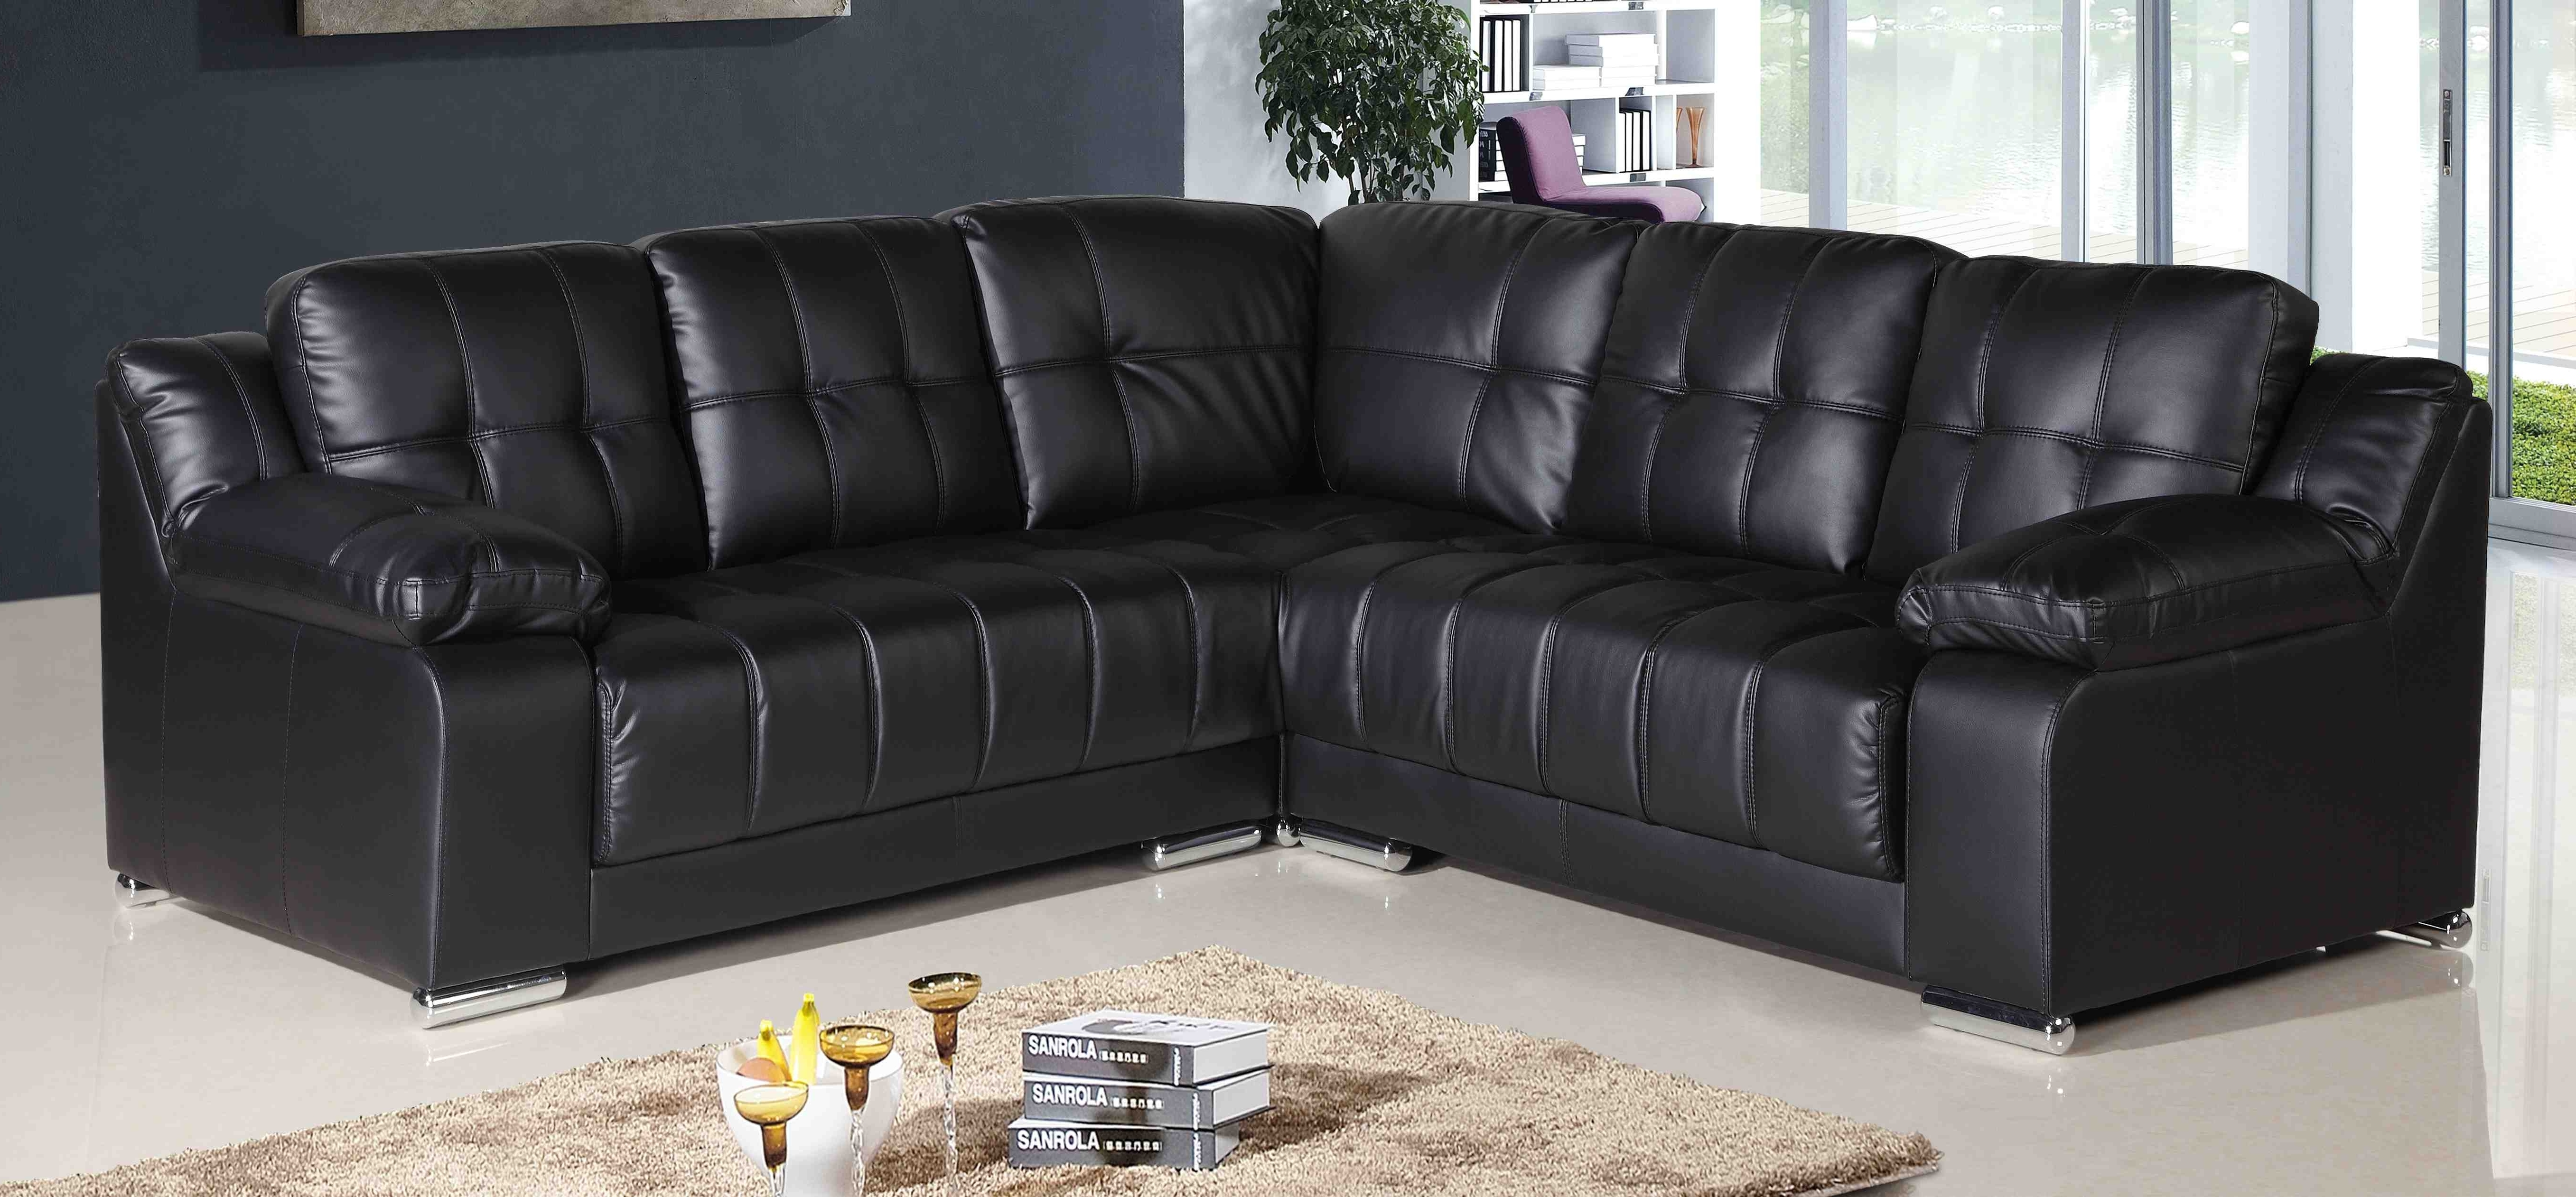 Most Recently Released Leather Corner Sofas With Extra Long Leather Corner Sofas • Leather Sofa (View 4 of 15)